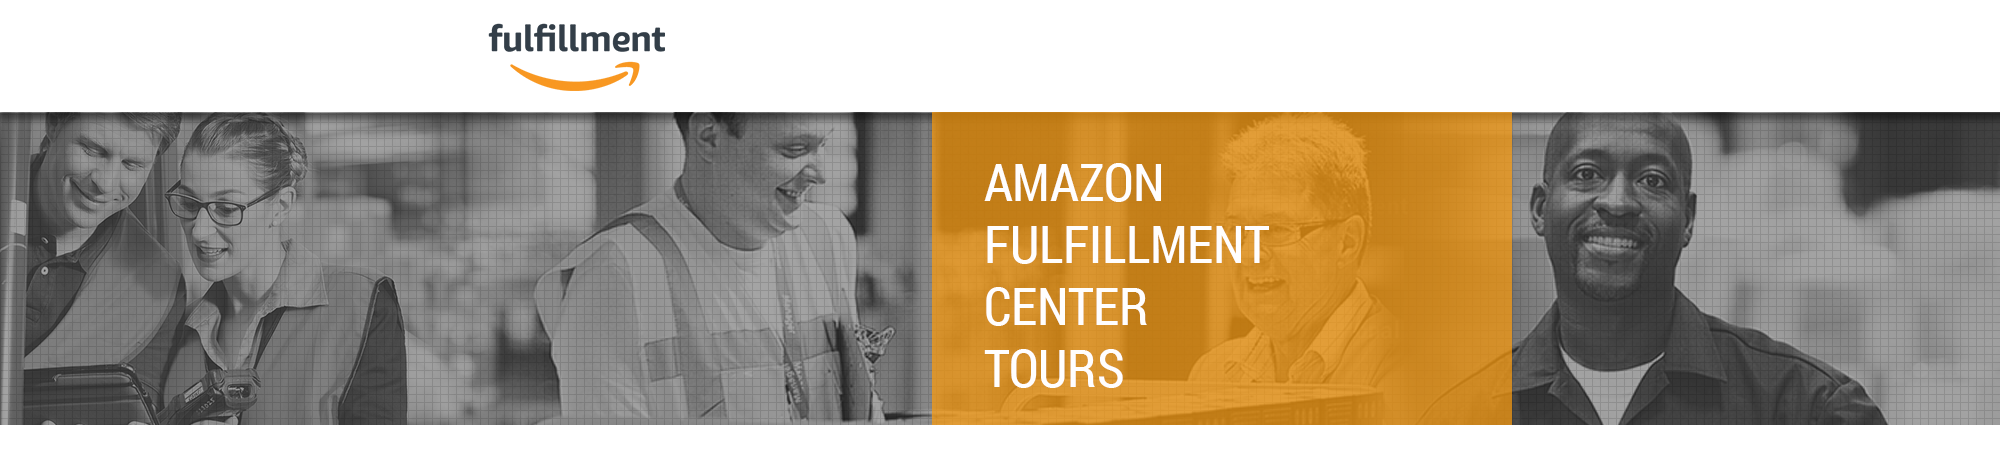 Amazon Fulfillment Center Tour  - Rugeley, Staffordshire